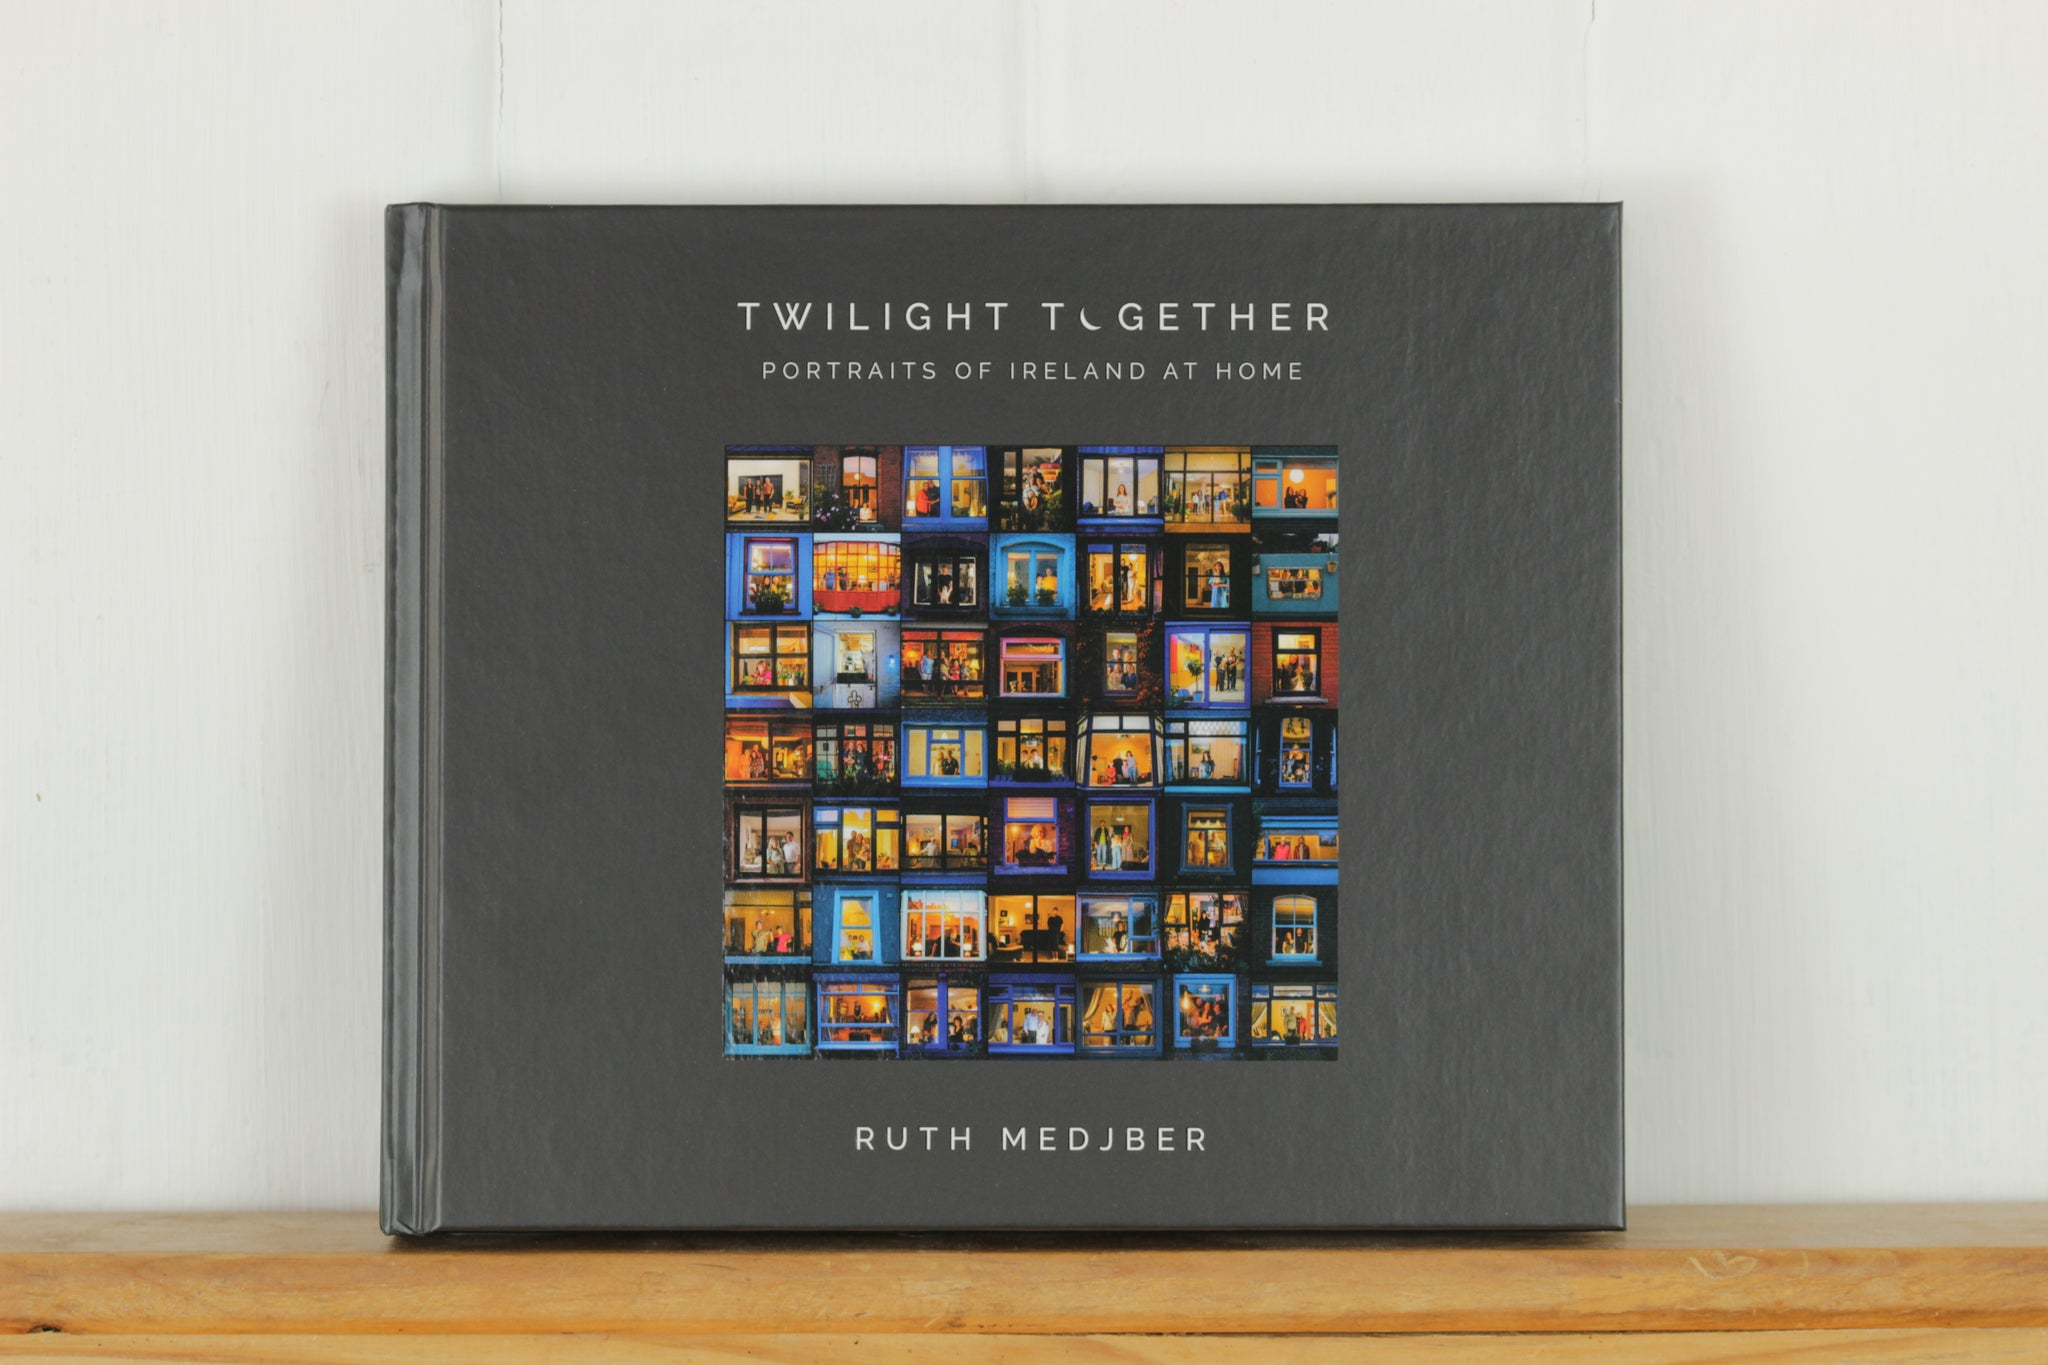 Twilight Together, Ruth Medjber